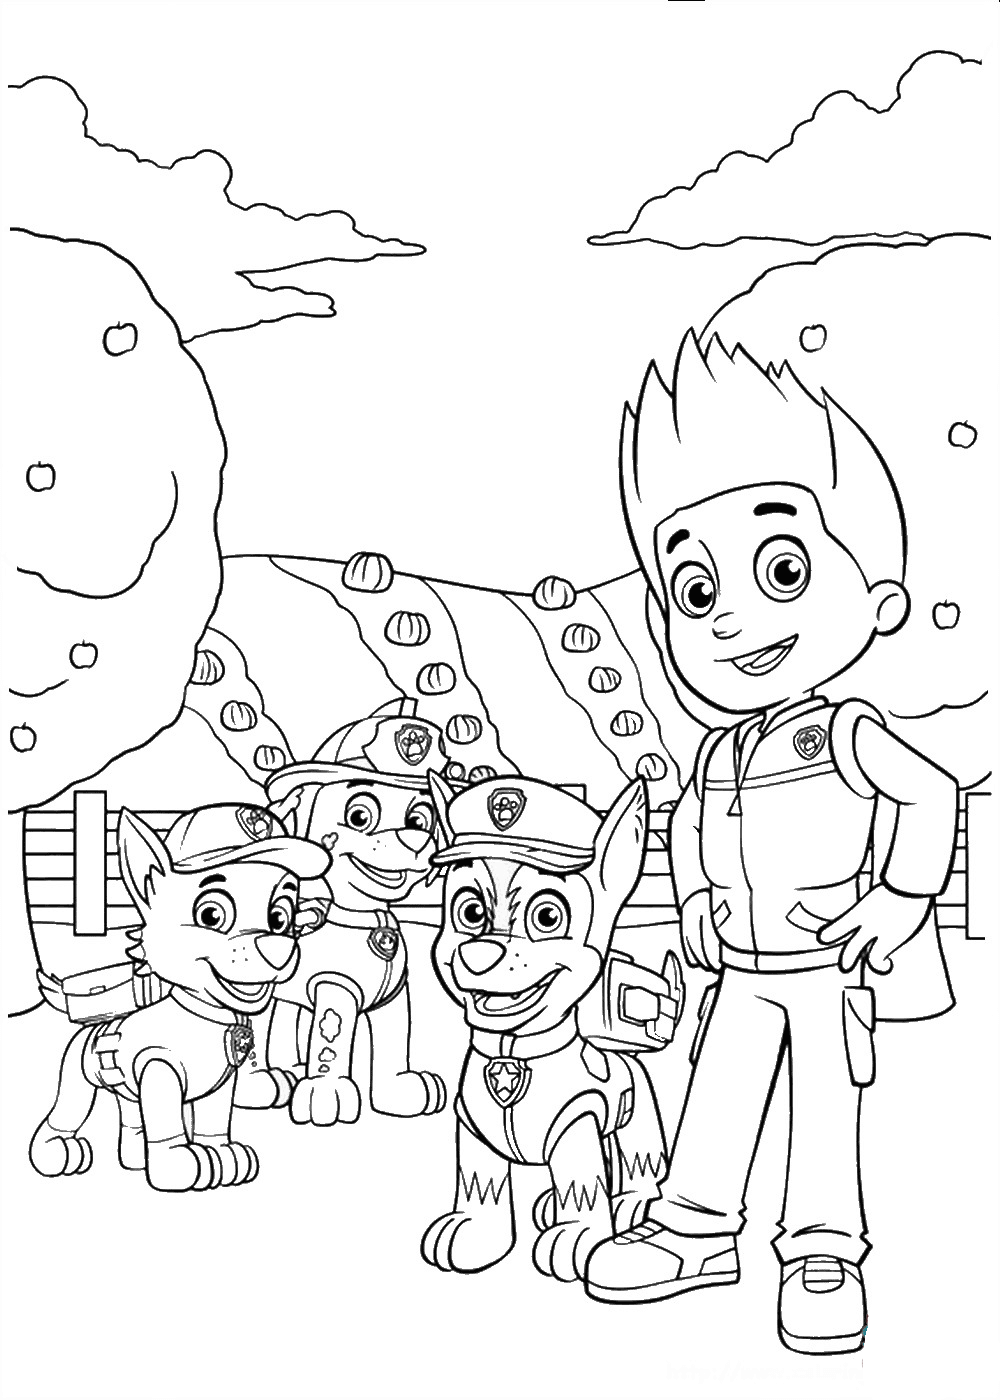 Quatang Gallery - Hosted Site Search Discovery For Companies Of All Sizes In 2020 Paw Patrol Coloring Pages Paw Patrol Coloring Paw Patrol Printables